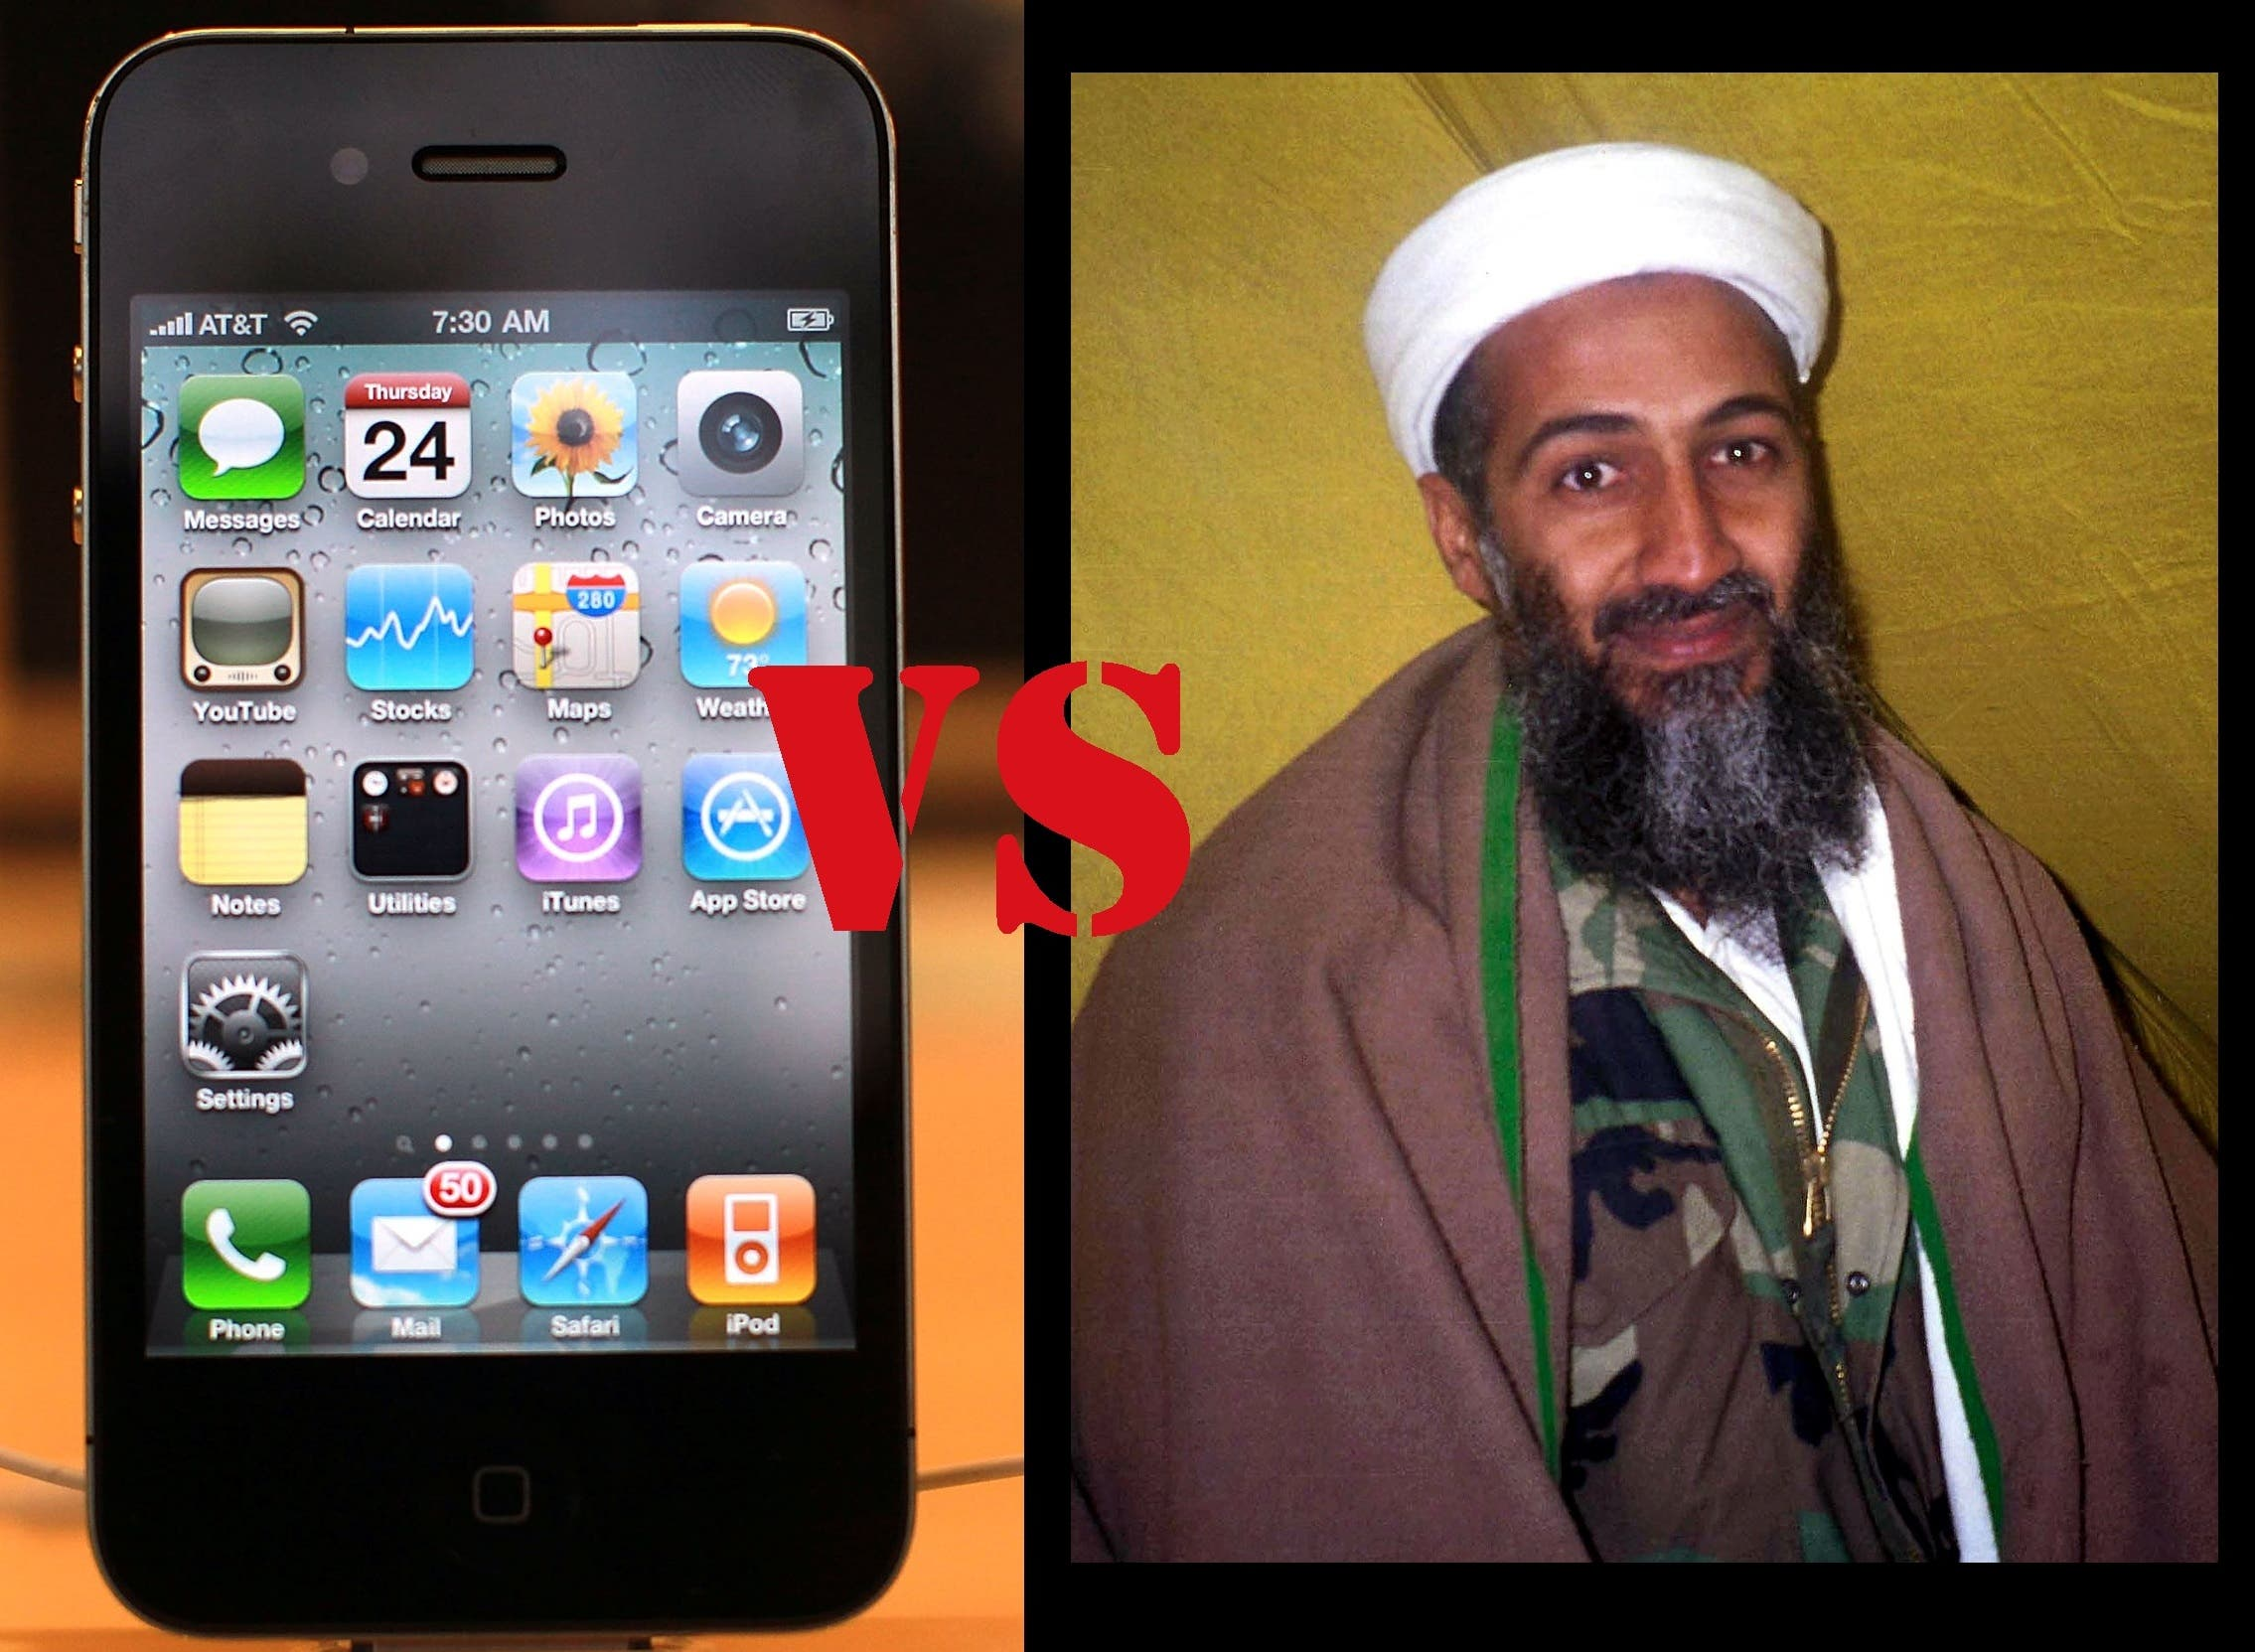 The world's champion hide-and-seeker could not elude the makers of iPhone applications, Apple- the heroes of the day